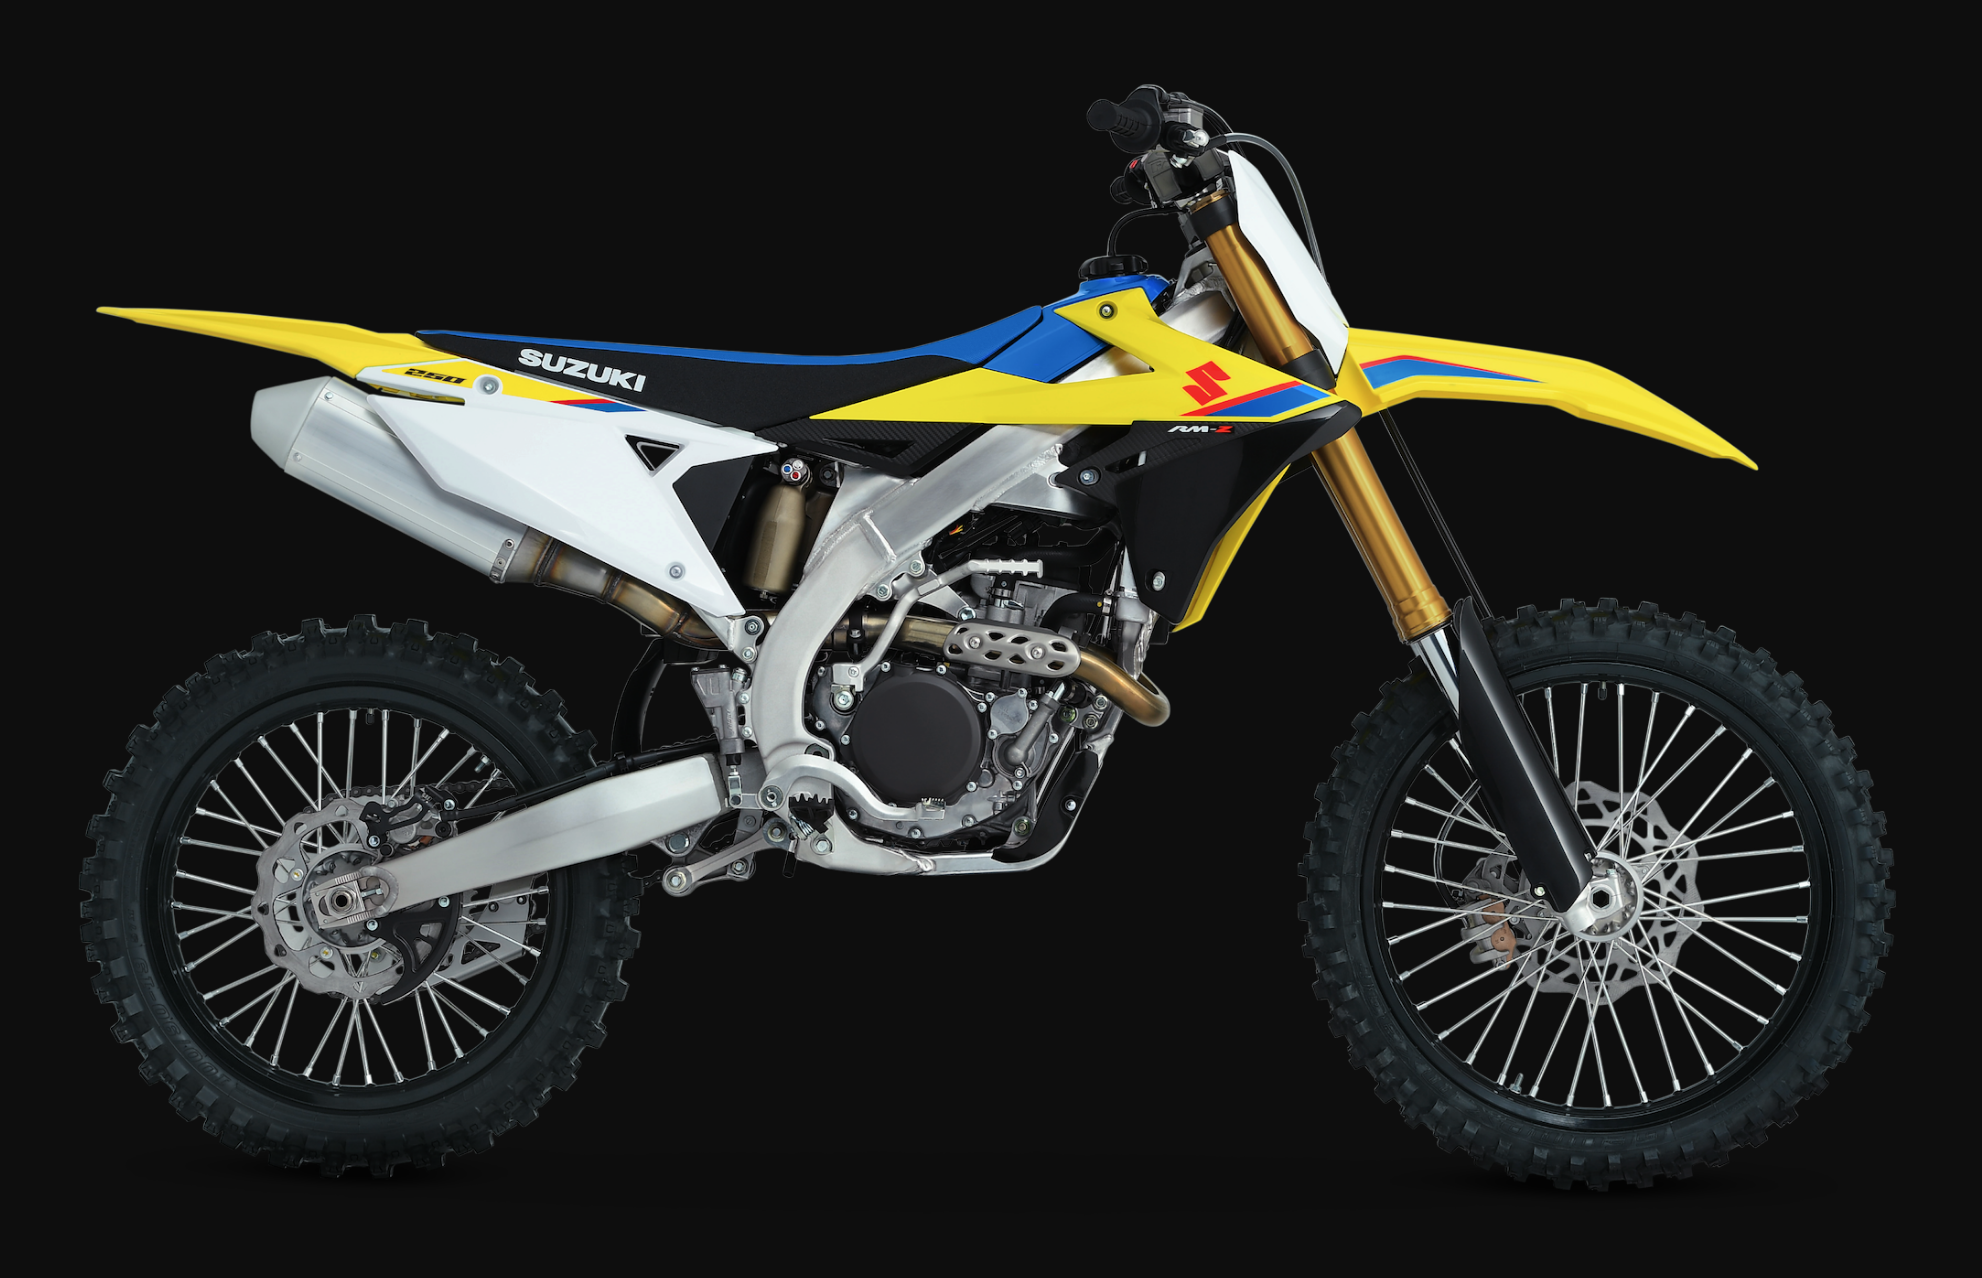 92 Concept of 2019 Suzuki Rm 250 New Review with 2019 Suzuki Rm 250